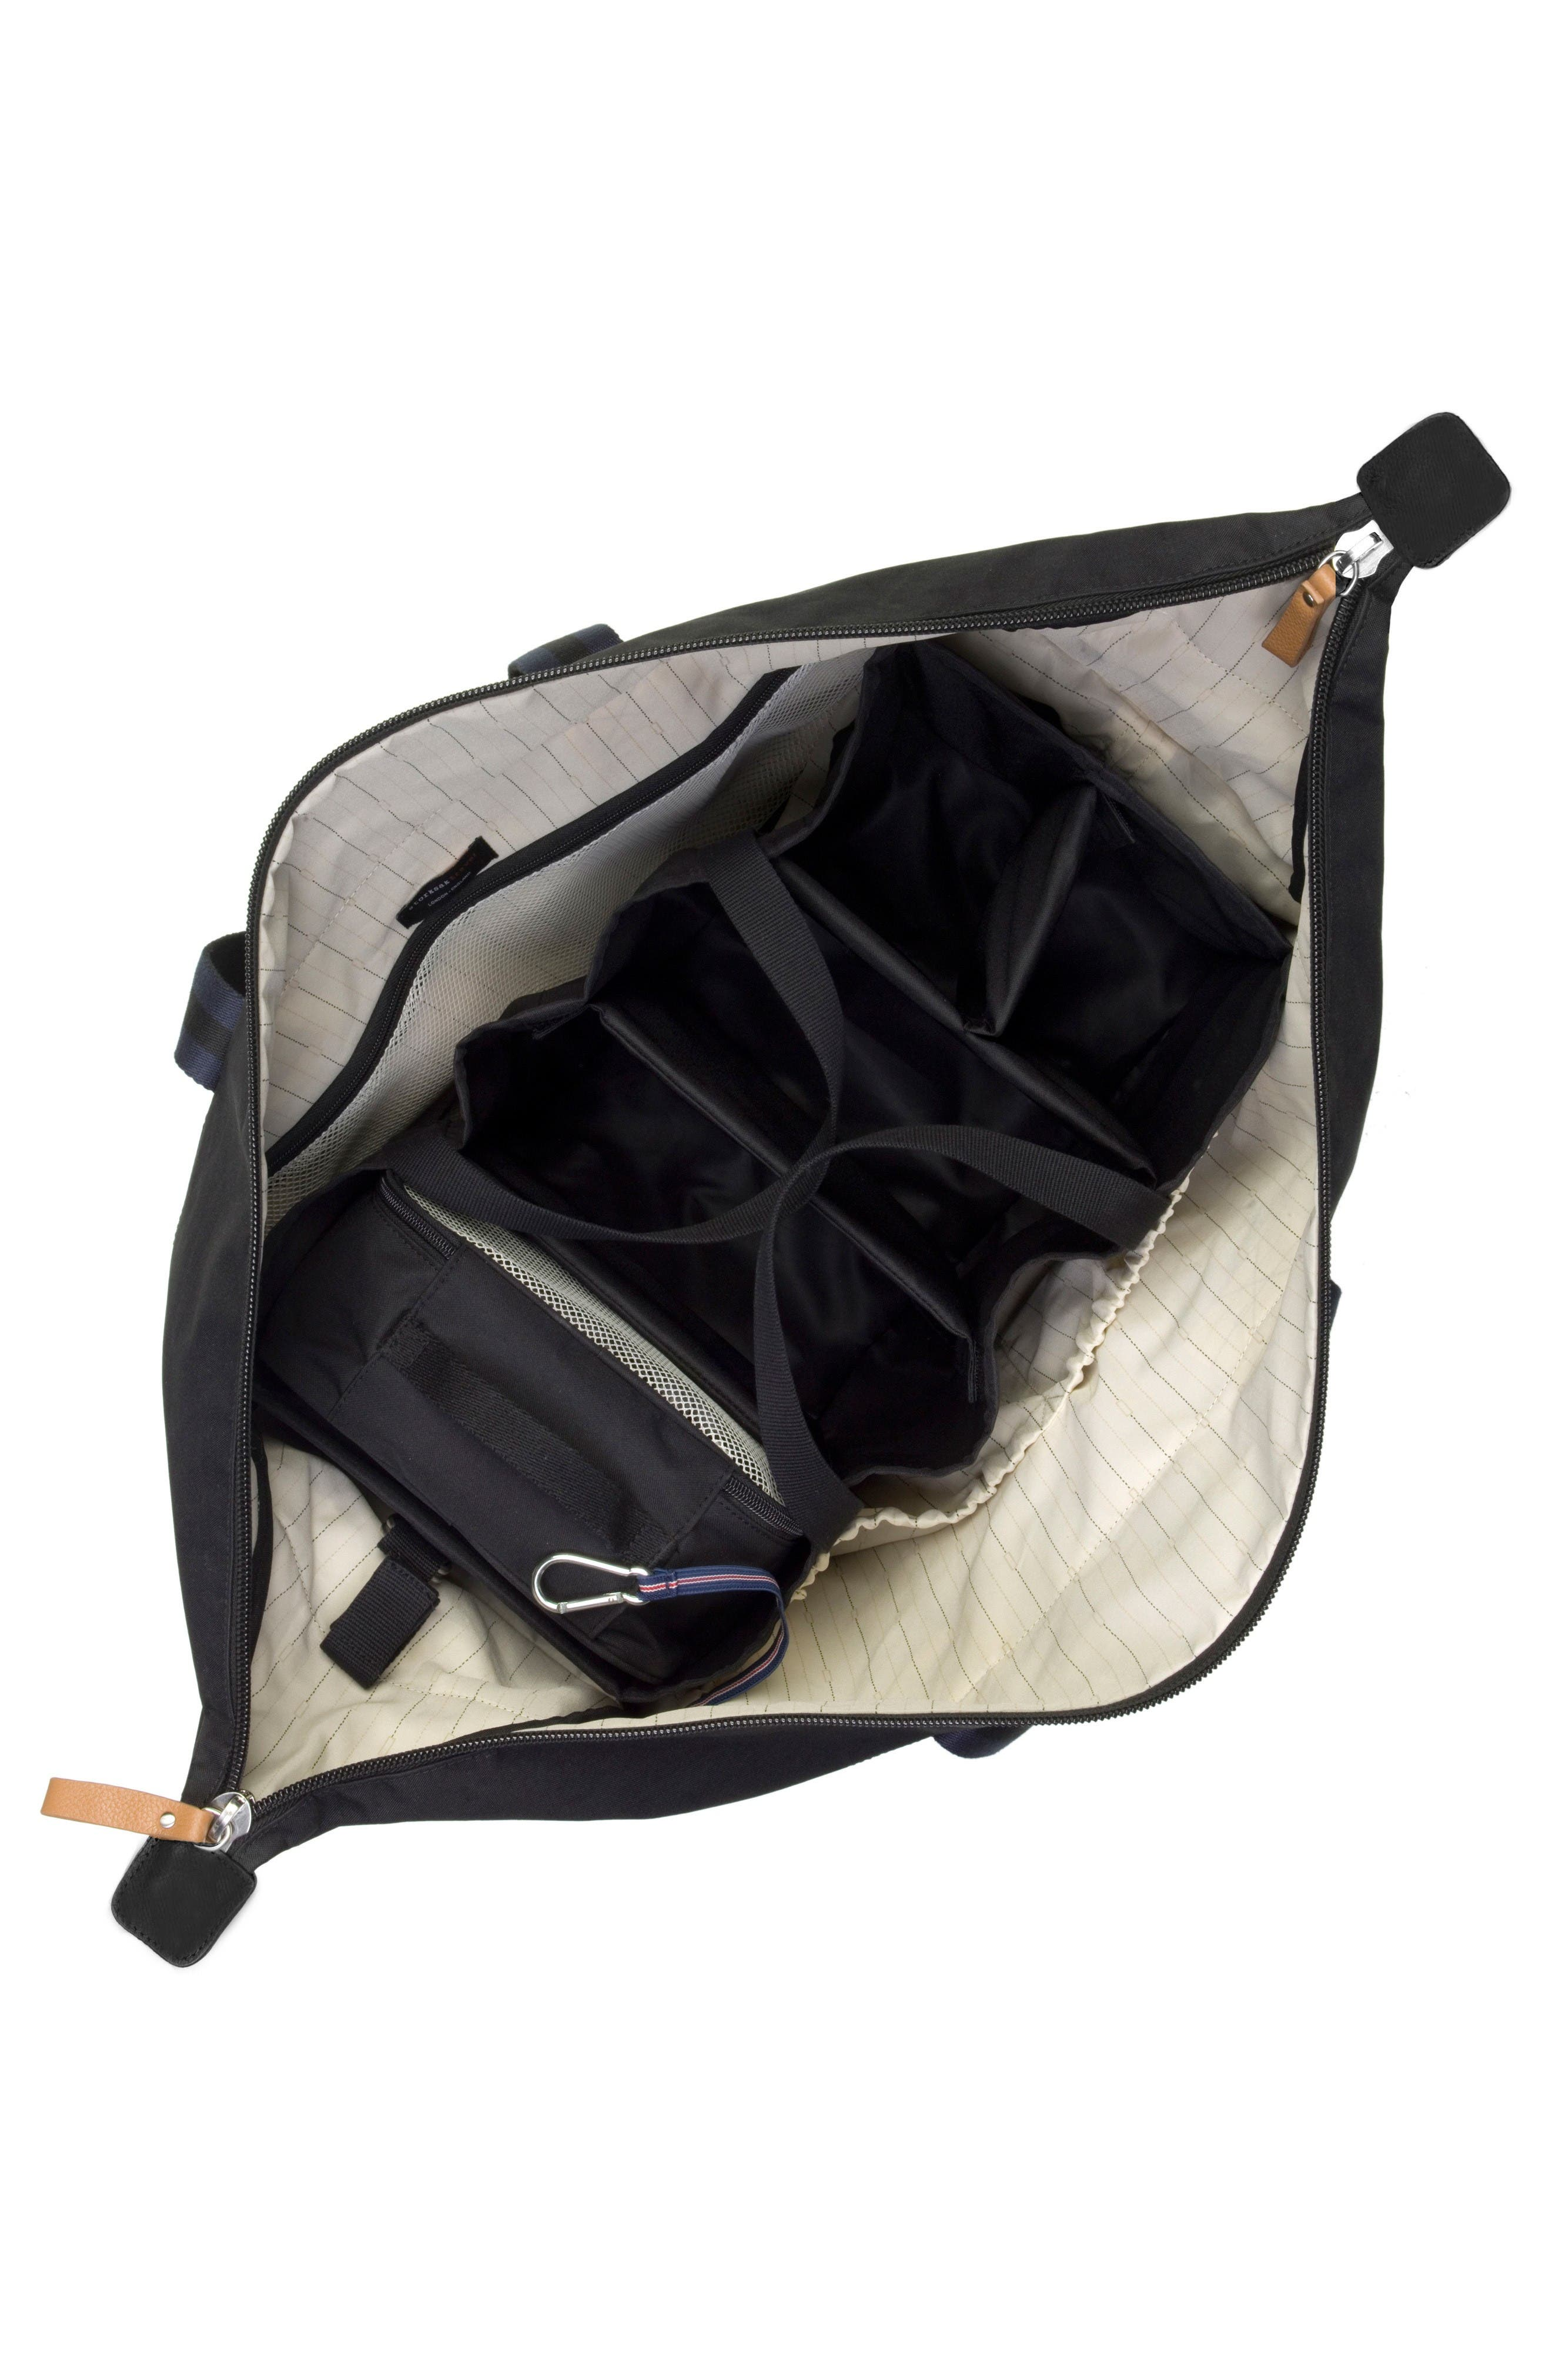 Travel Duffel with Hanging Organizer,                             Alternate thumbnail 2, color,                             Black